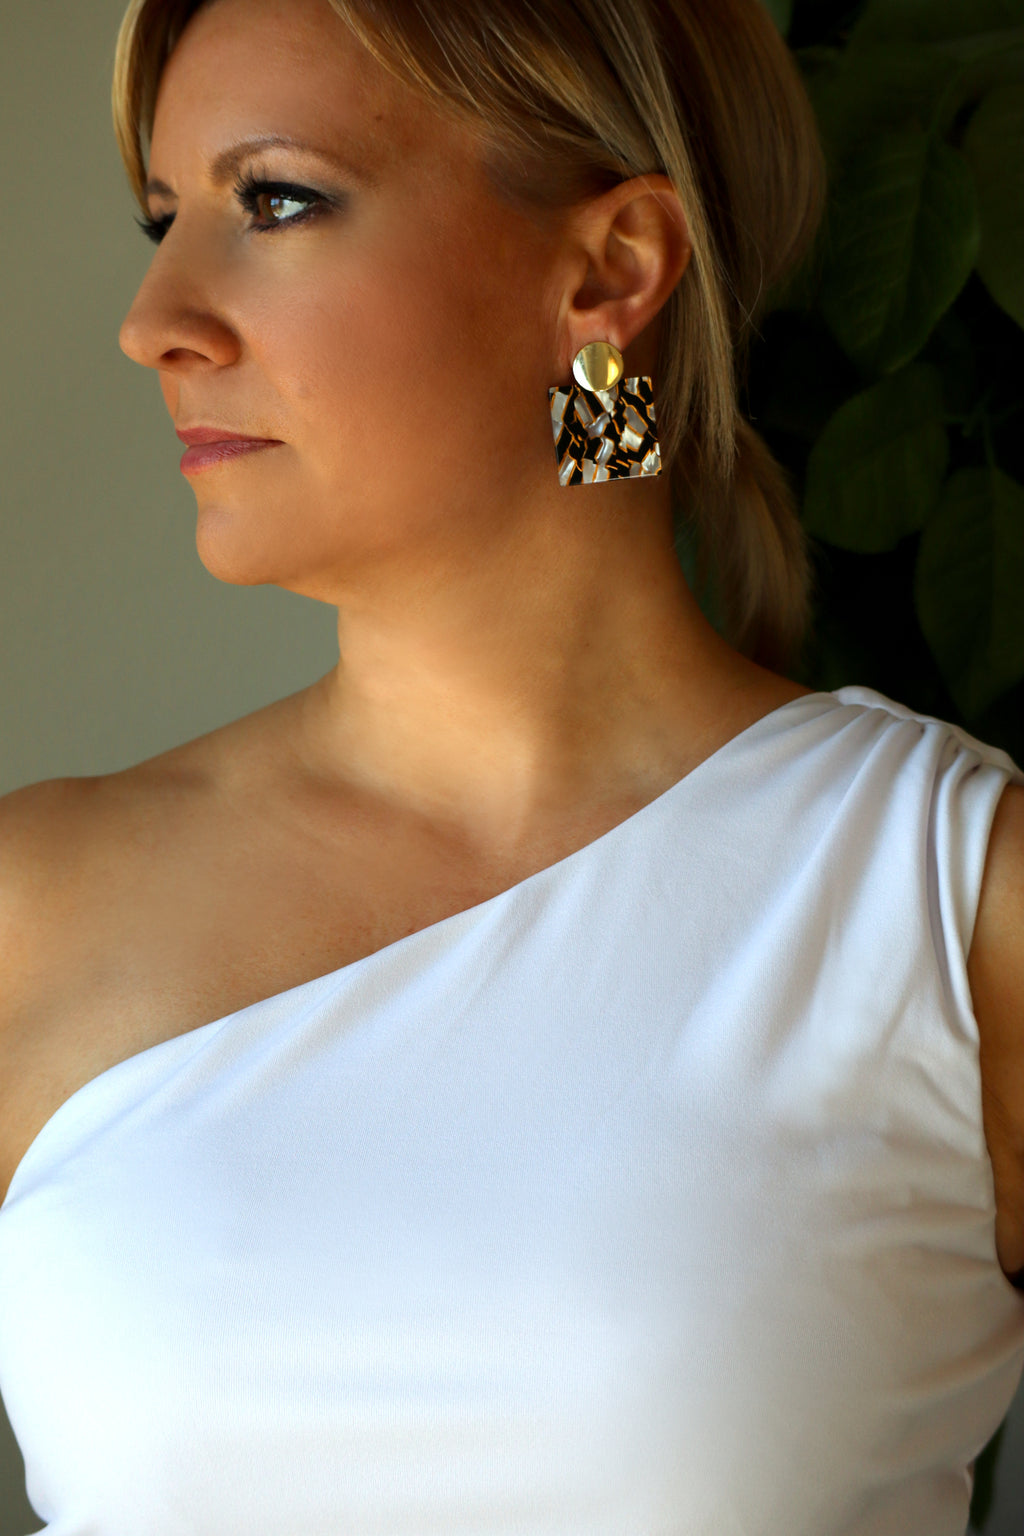 SKYLAR'S SQUARE EARRINGS - GOLD, BLACK, & WHITE